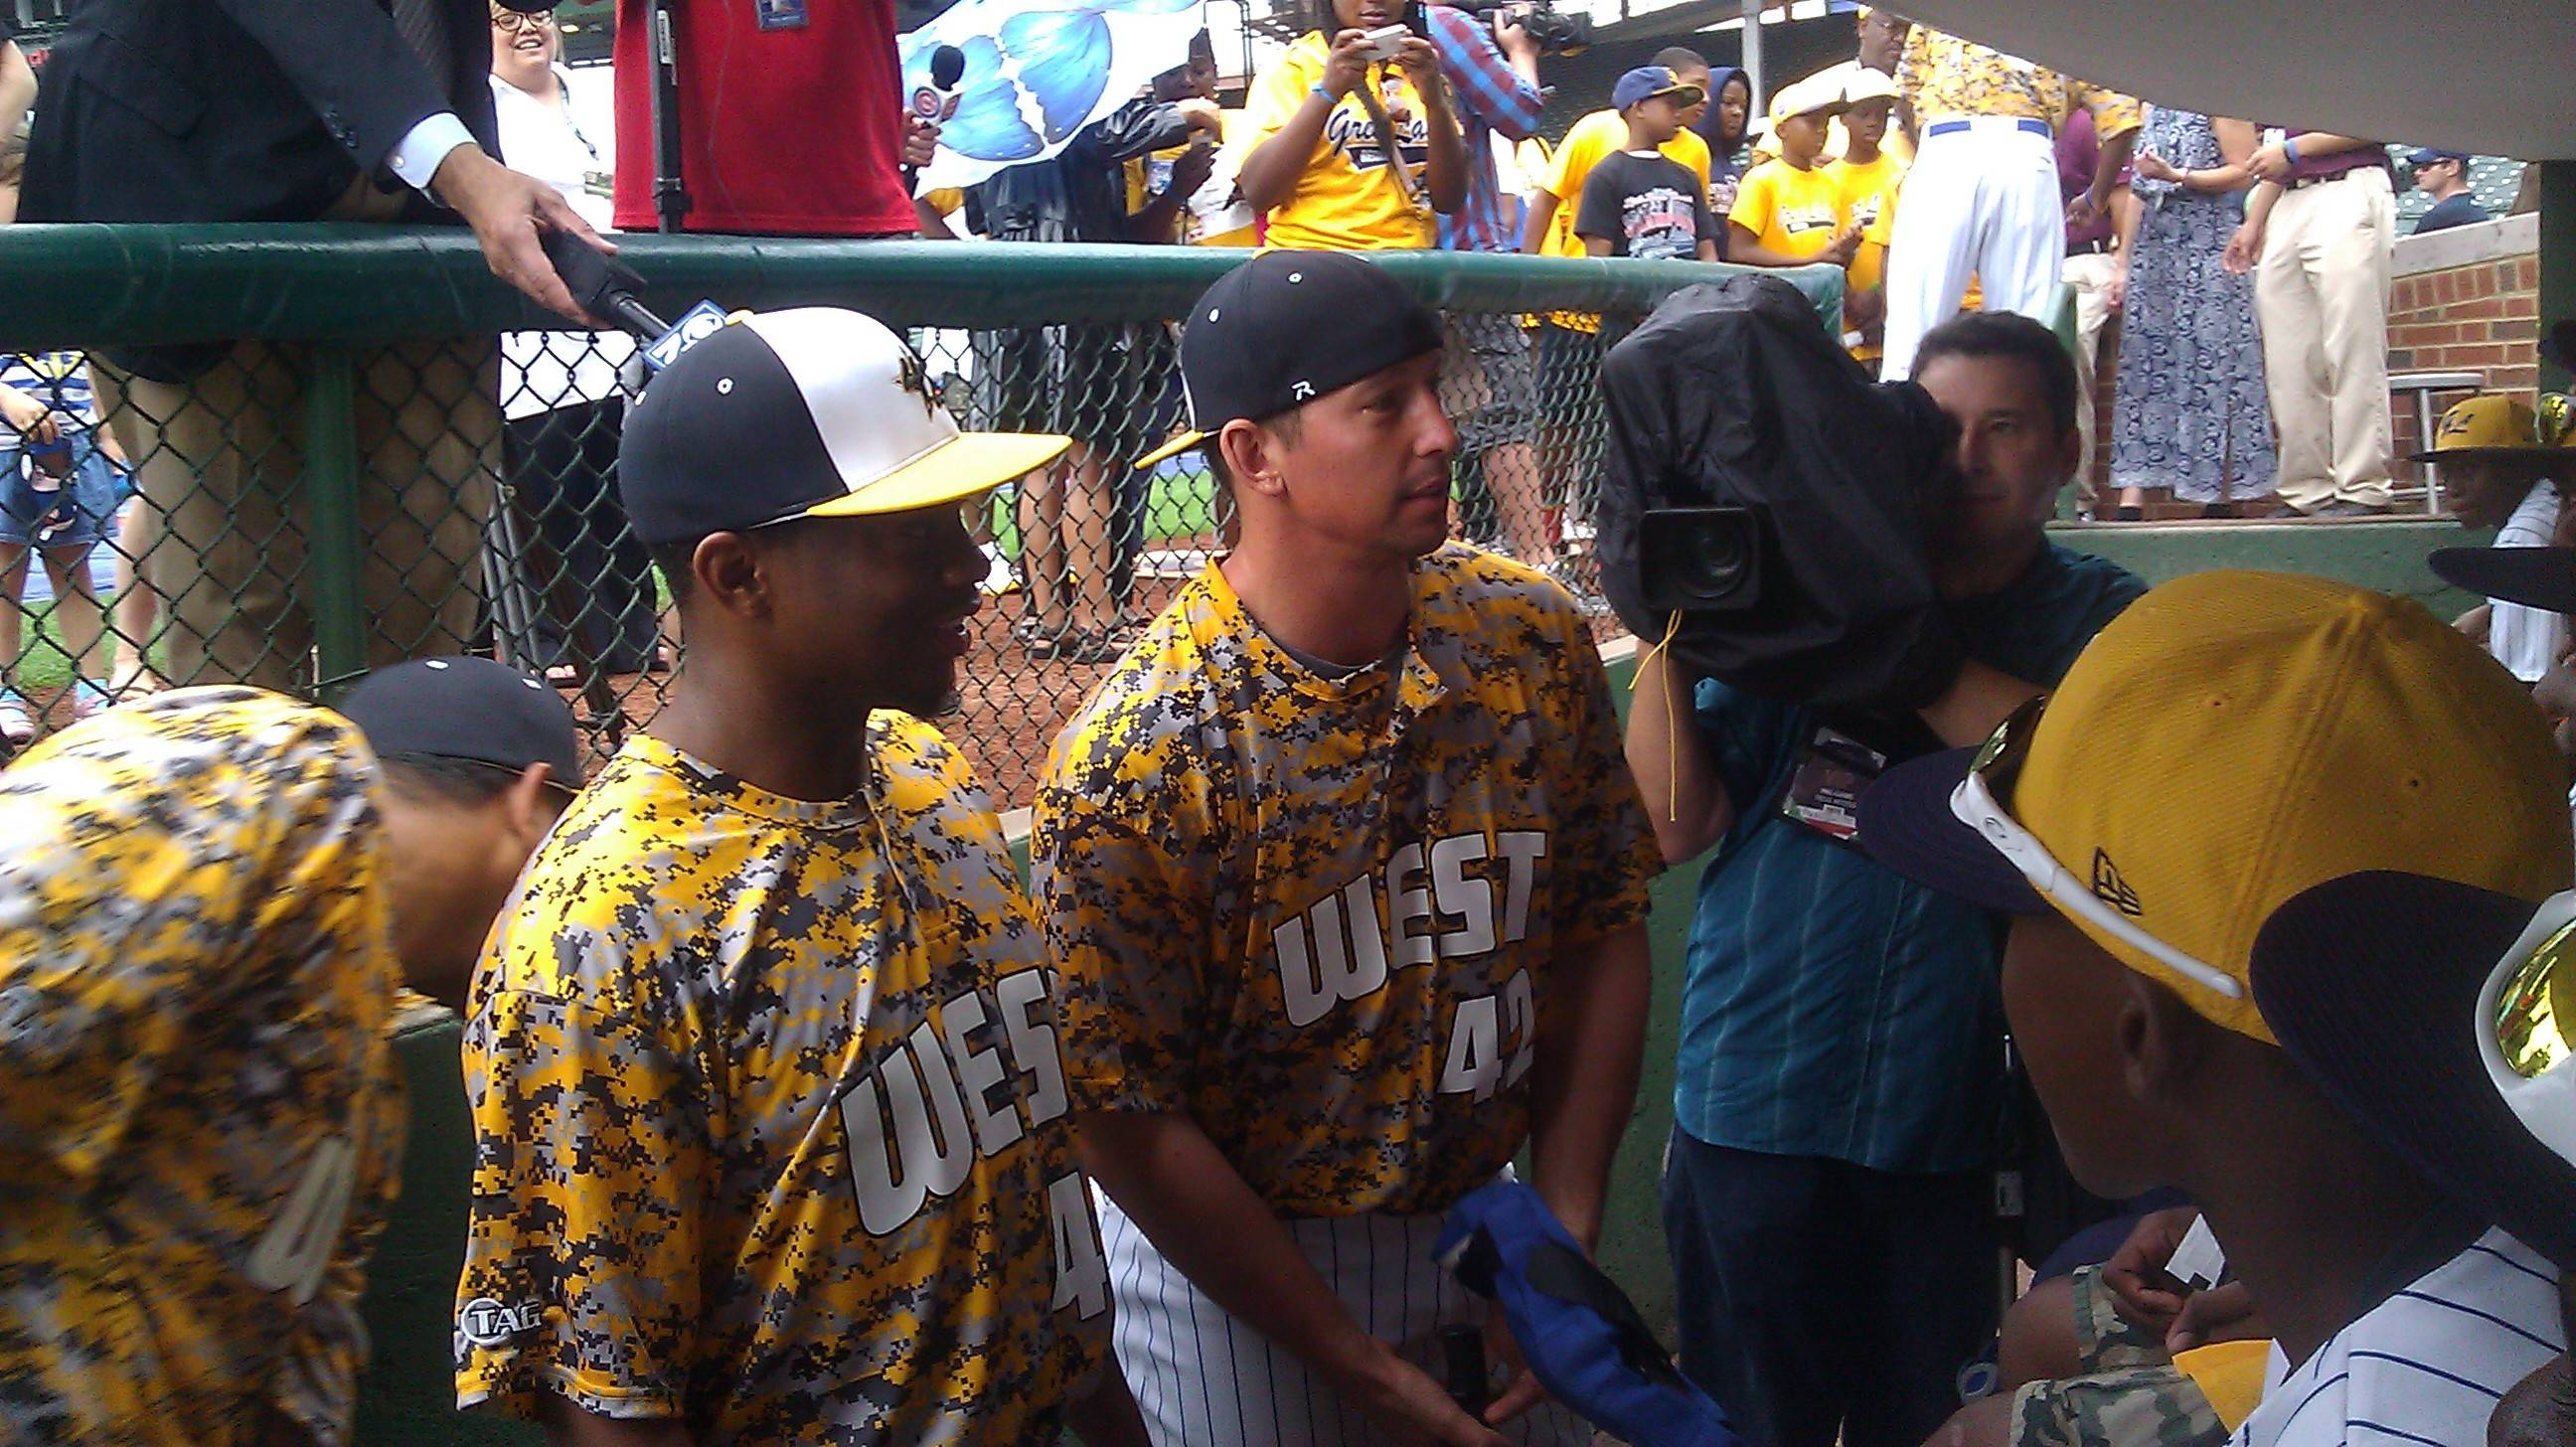 Cubs pitcher Wesley Wright, left, and catcher John Baker talk with members of the Jackie Robinson West Little League team Monday in the dugout at Wrigley Field. Cubs players wore special warm-up jerseys to honor the United States championship team.